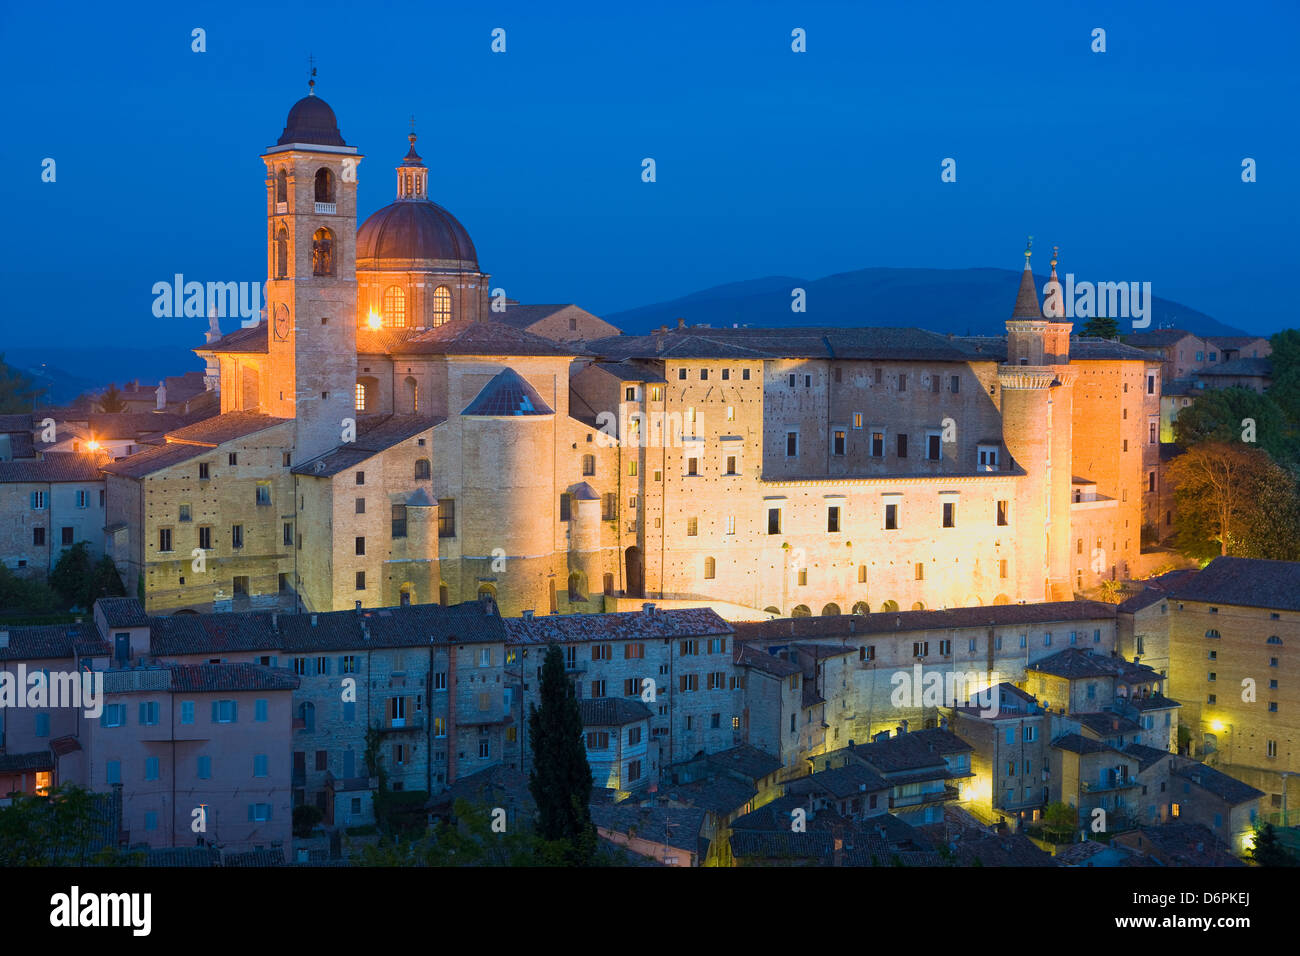 Ducal Palace at night, Urbino, Le Marche, Italy, Europe - Stock Image